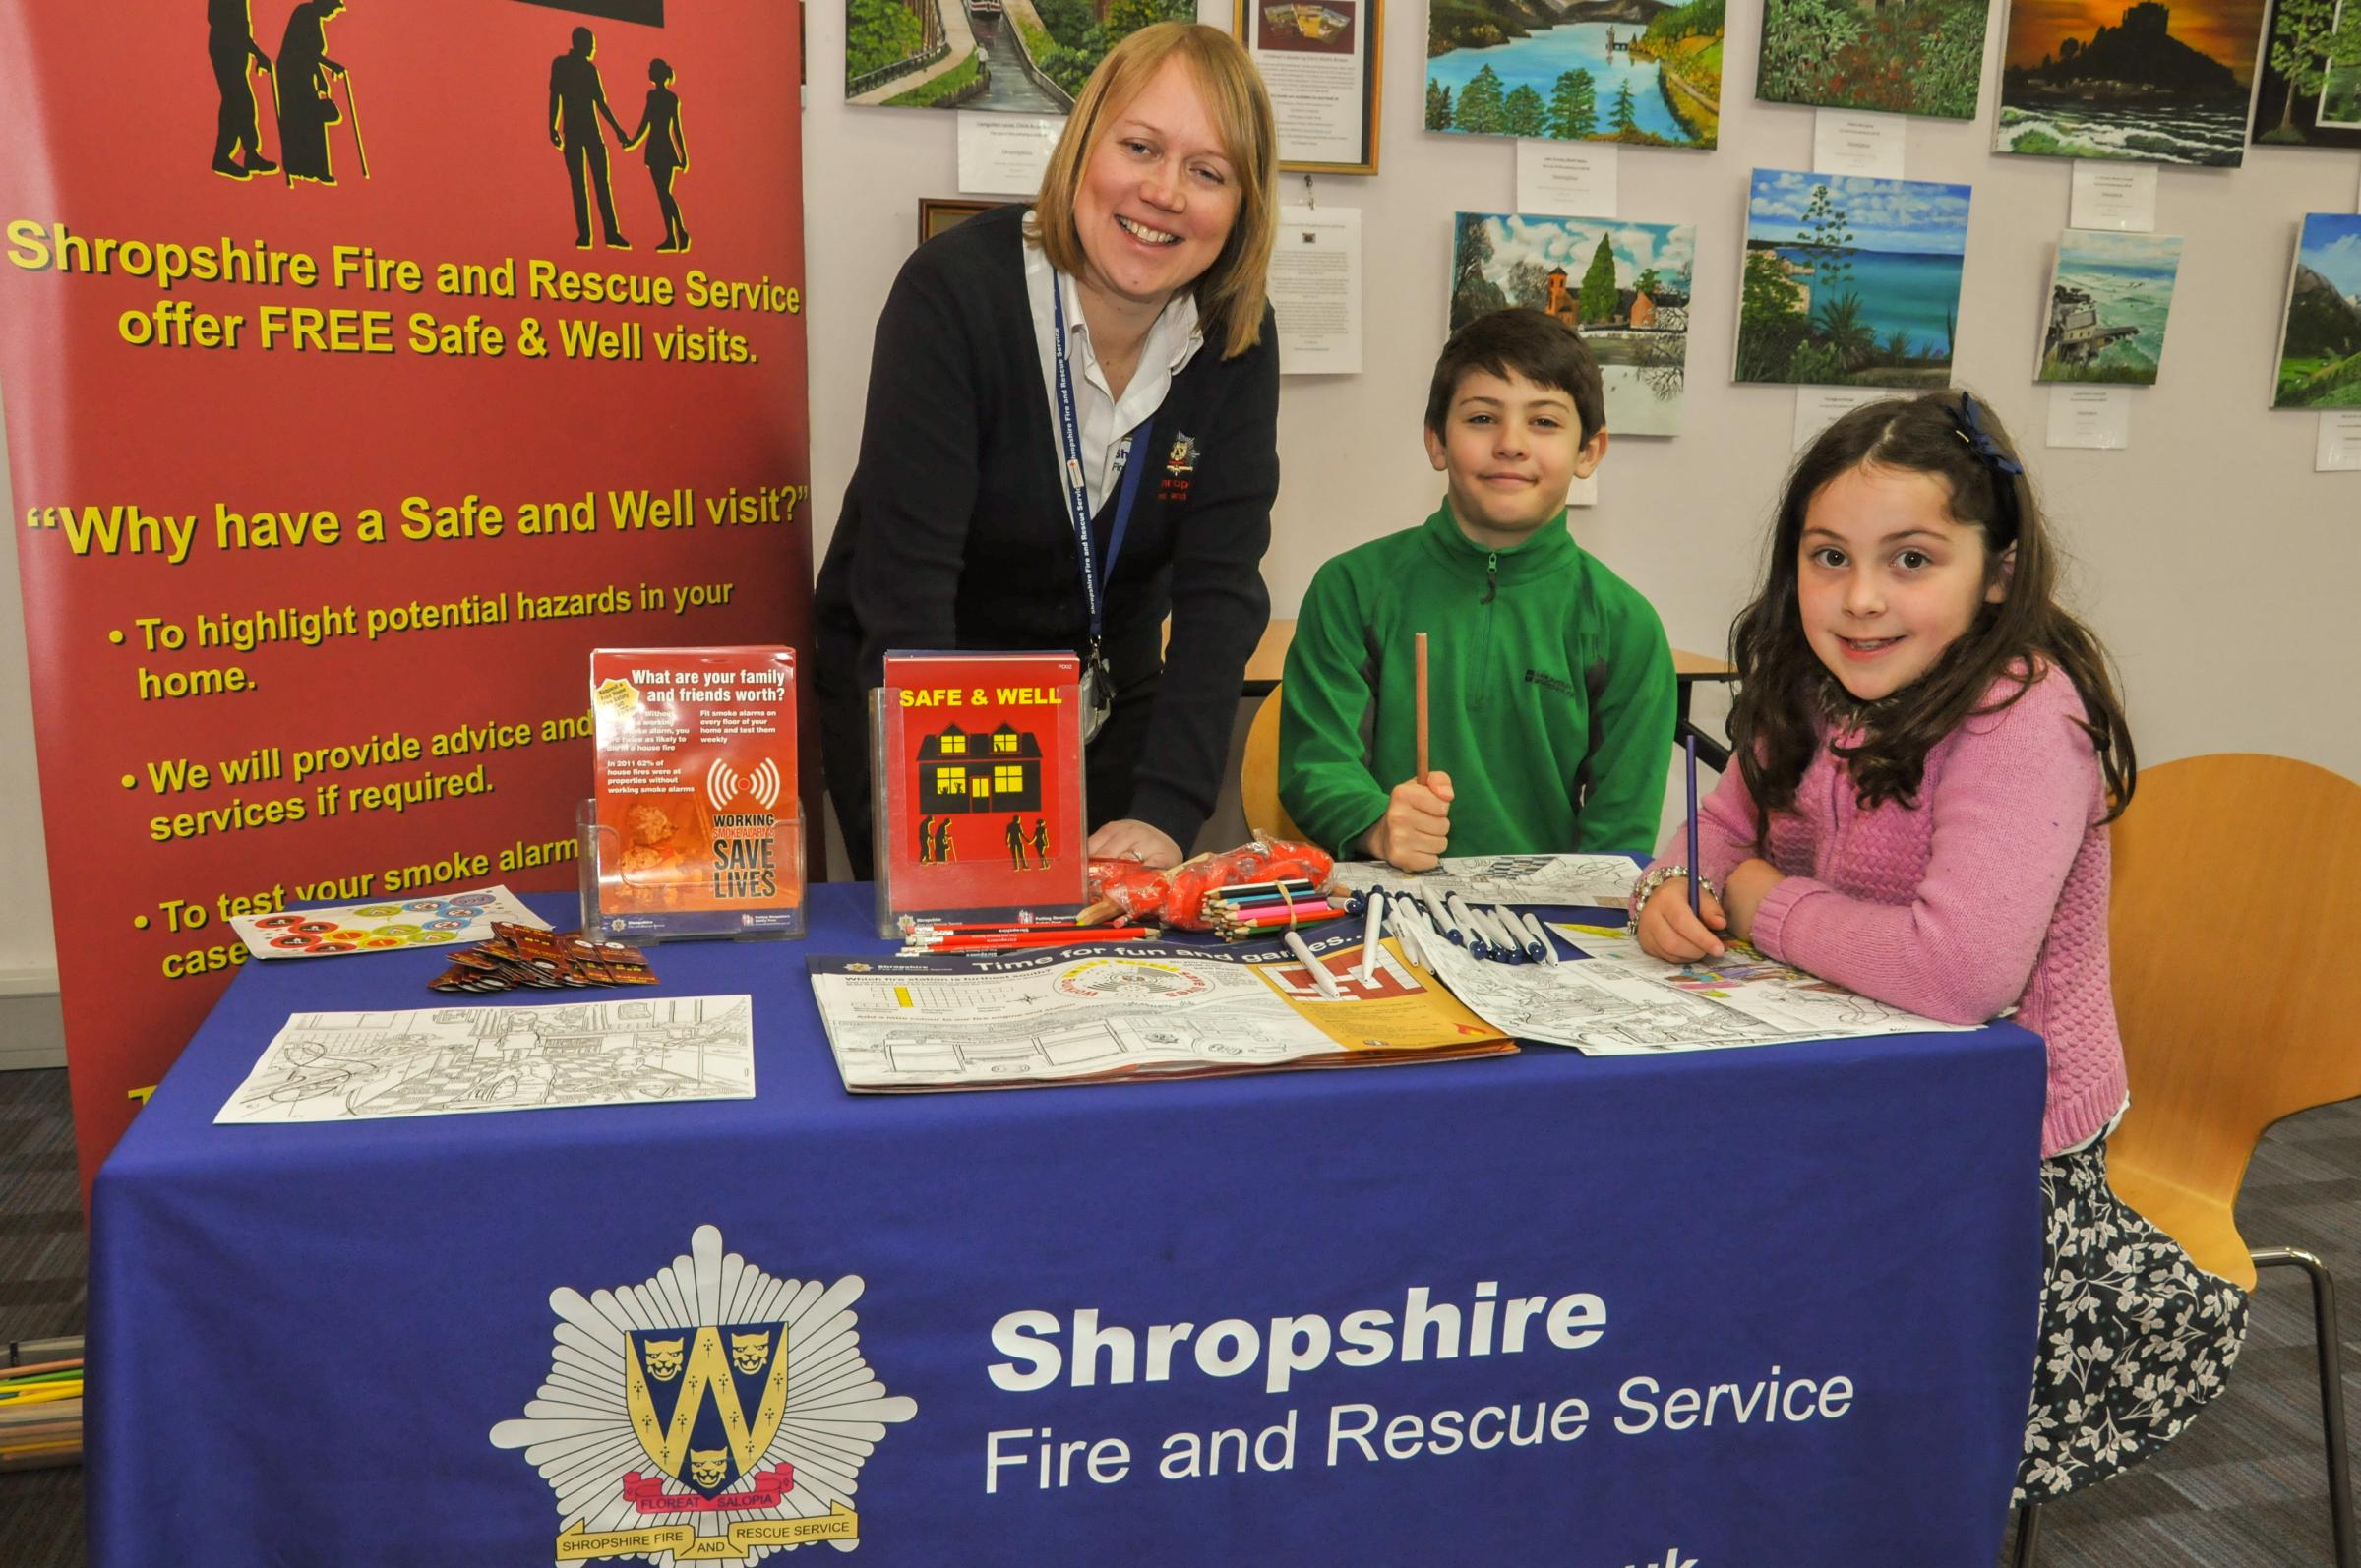 Oswestry Library Shropshire Fire & Rescue Service What are your family and friends worth, Fire team are at the Library to warn kids of the danger of fire.  Picture Laura Kavanagh-Jones of Shropshire Fire & Rescue Service vulnerable persons Officer with Al